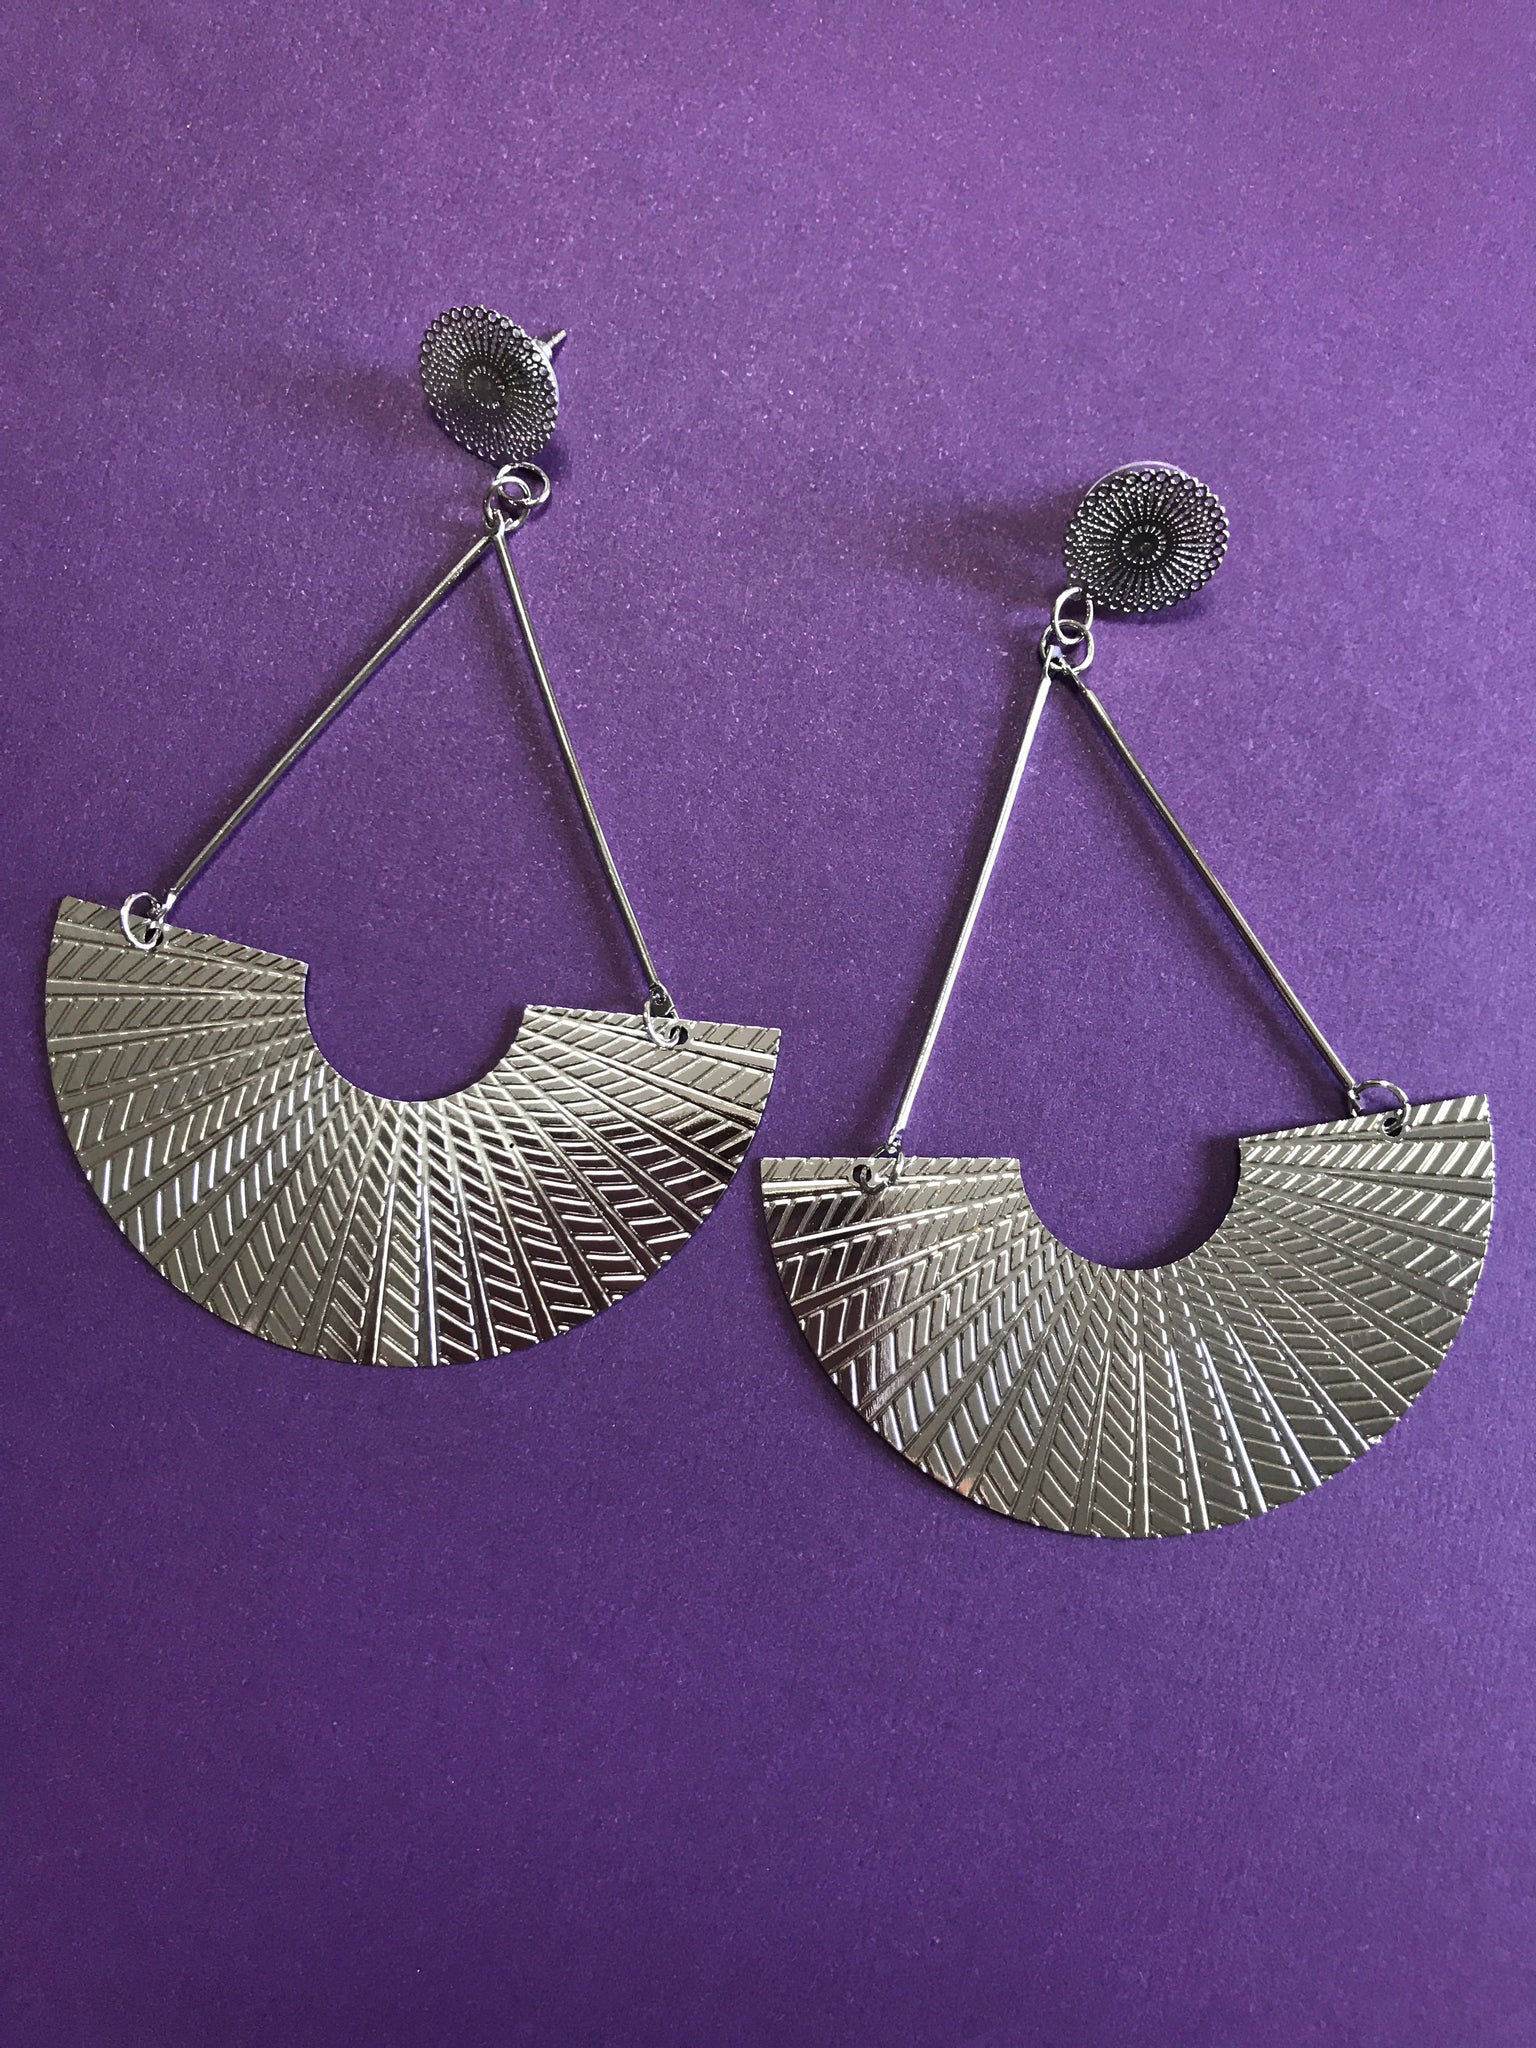 night on the town earrings #1